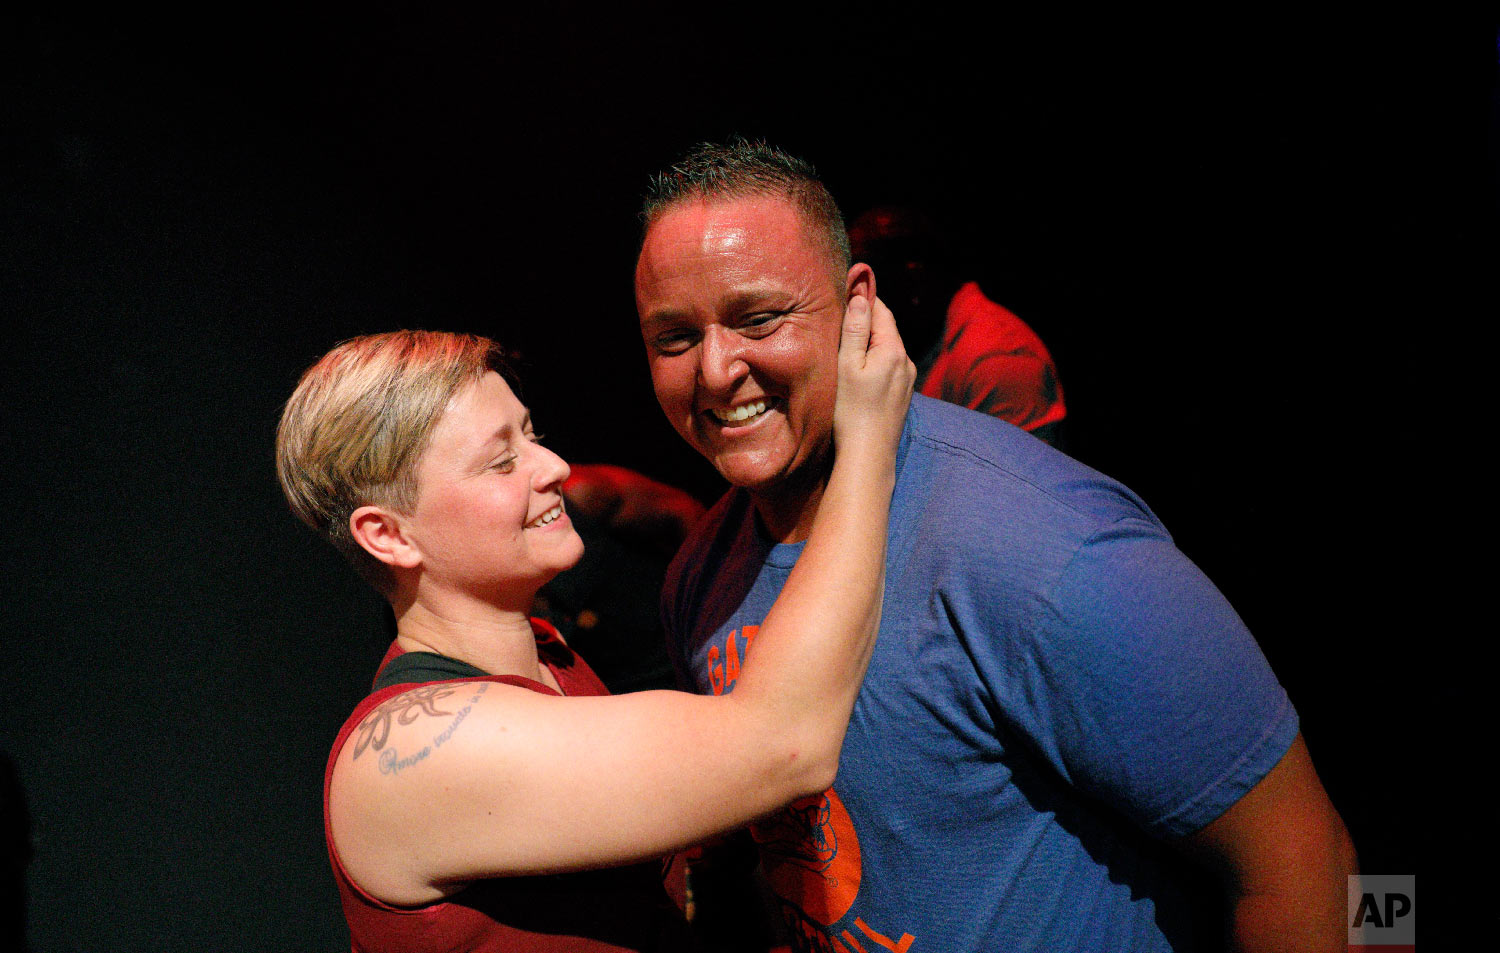 Kennedy Conners, of Conyers, Ga., right, who transitioned from female a year and half ago, is embraced by his wife, Nikki, after performing in the International Association of Trans Bodybuilders competition in Atlanta, Oct. 6, 2018. (AP Photo/David Goldman)